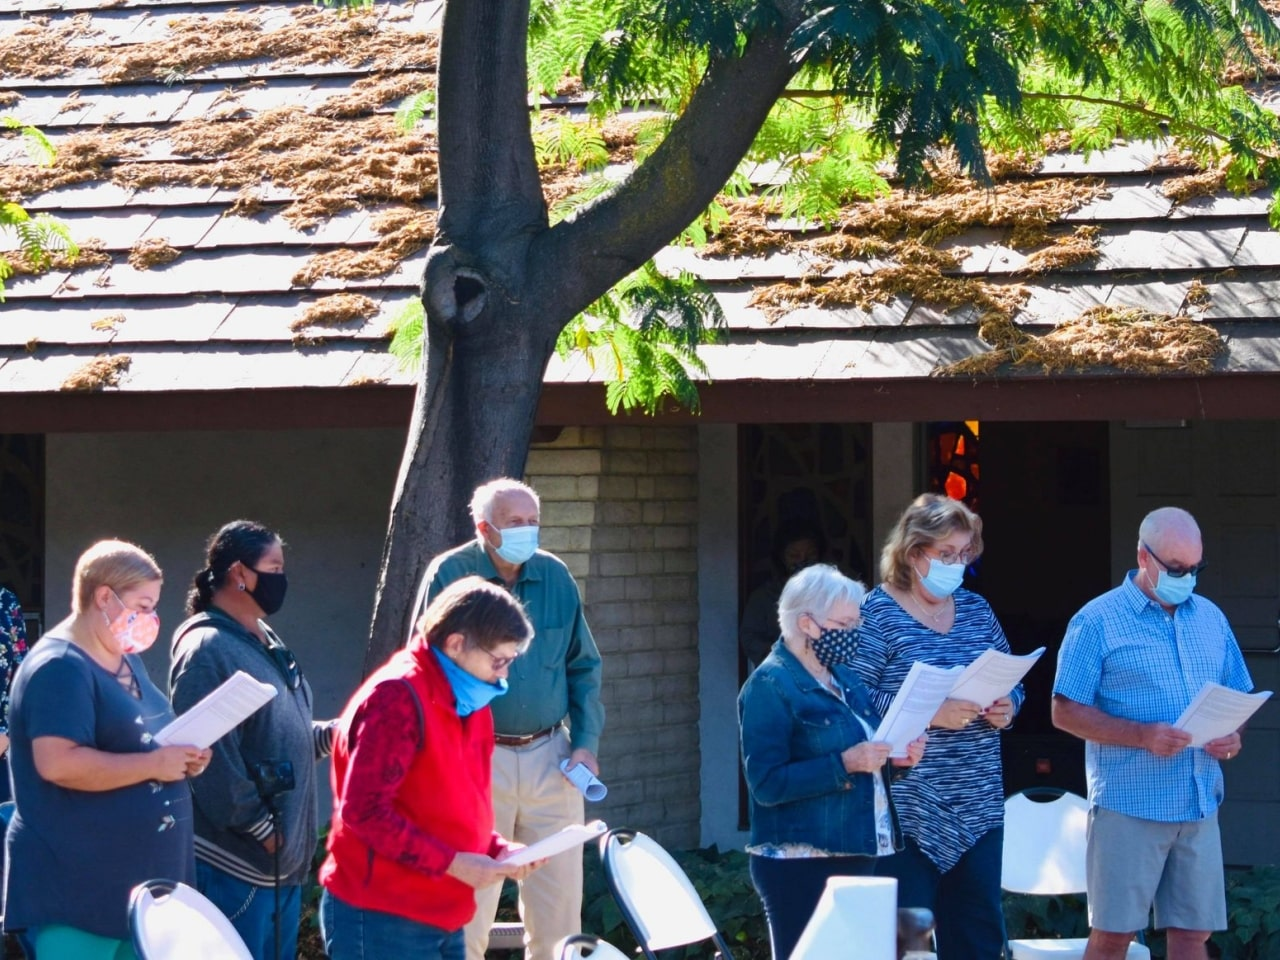 Group of standing people wearing face masks during outdoor church service in San Jose, CA